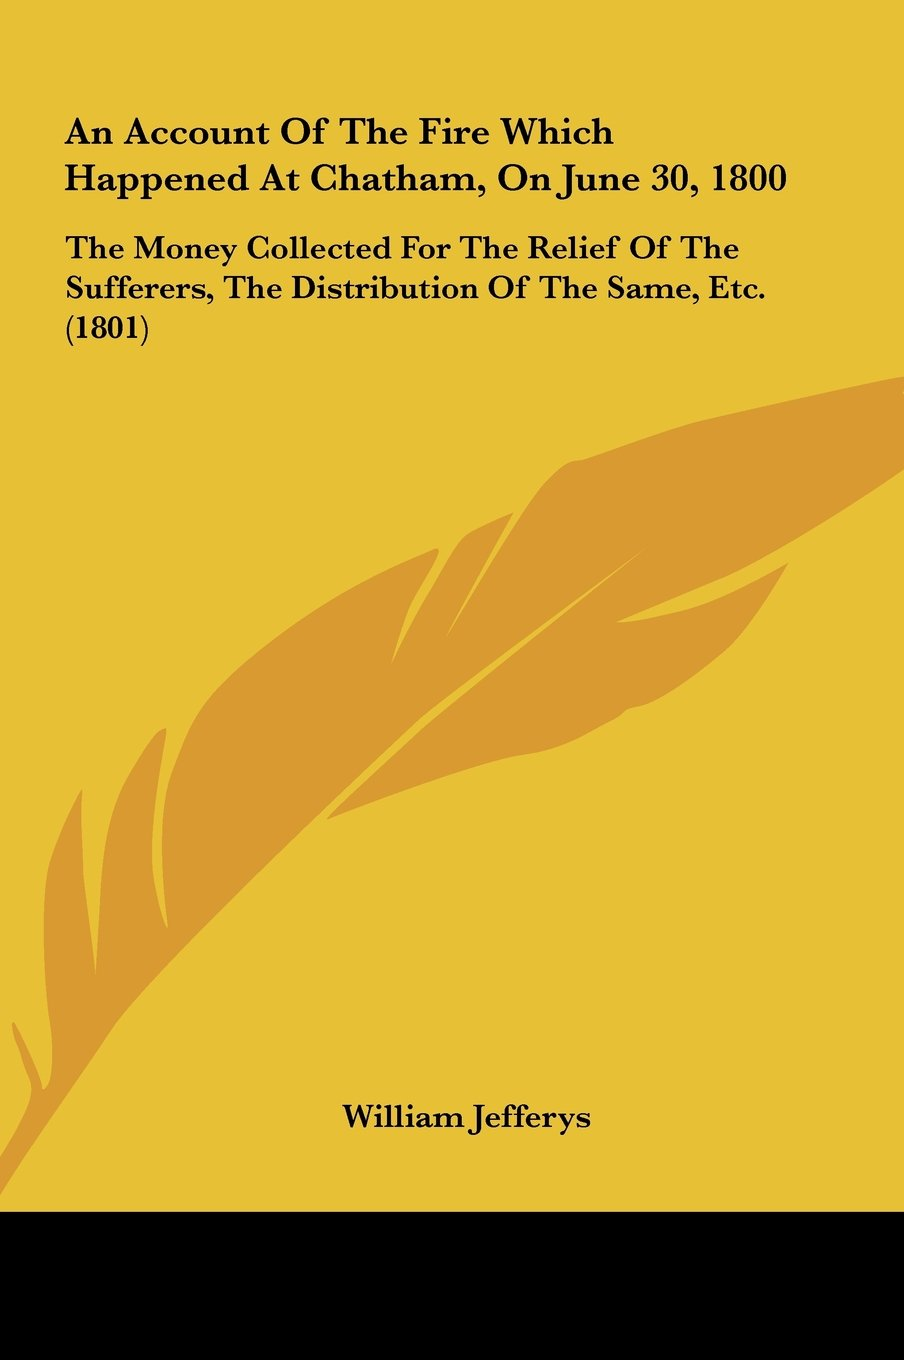 Download An  Account of the Fire Which Happened at Chatham, on June 30, 1800: The Money Collected for the Relief of the Sufferers, the Distribution of the Same ebook